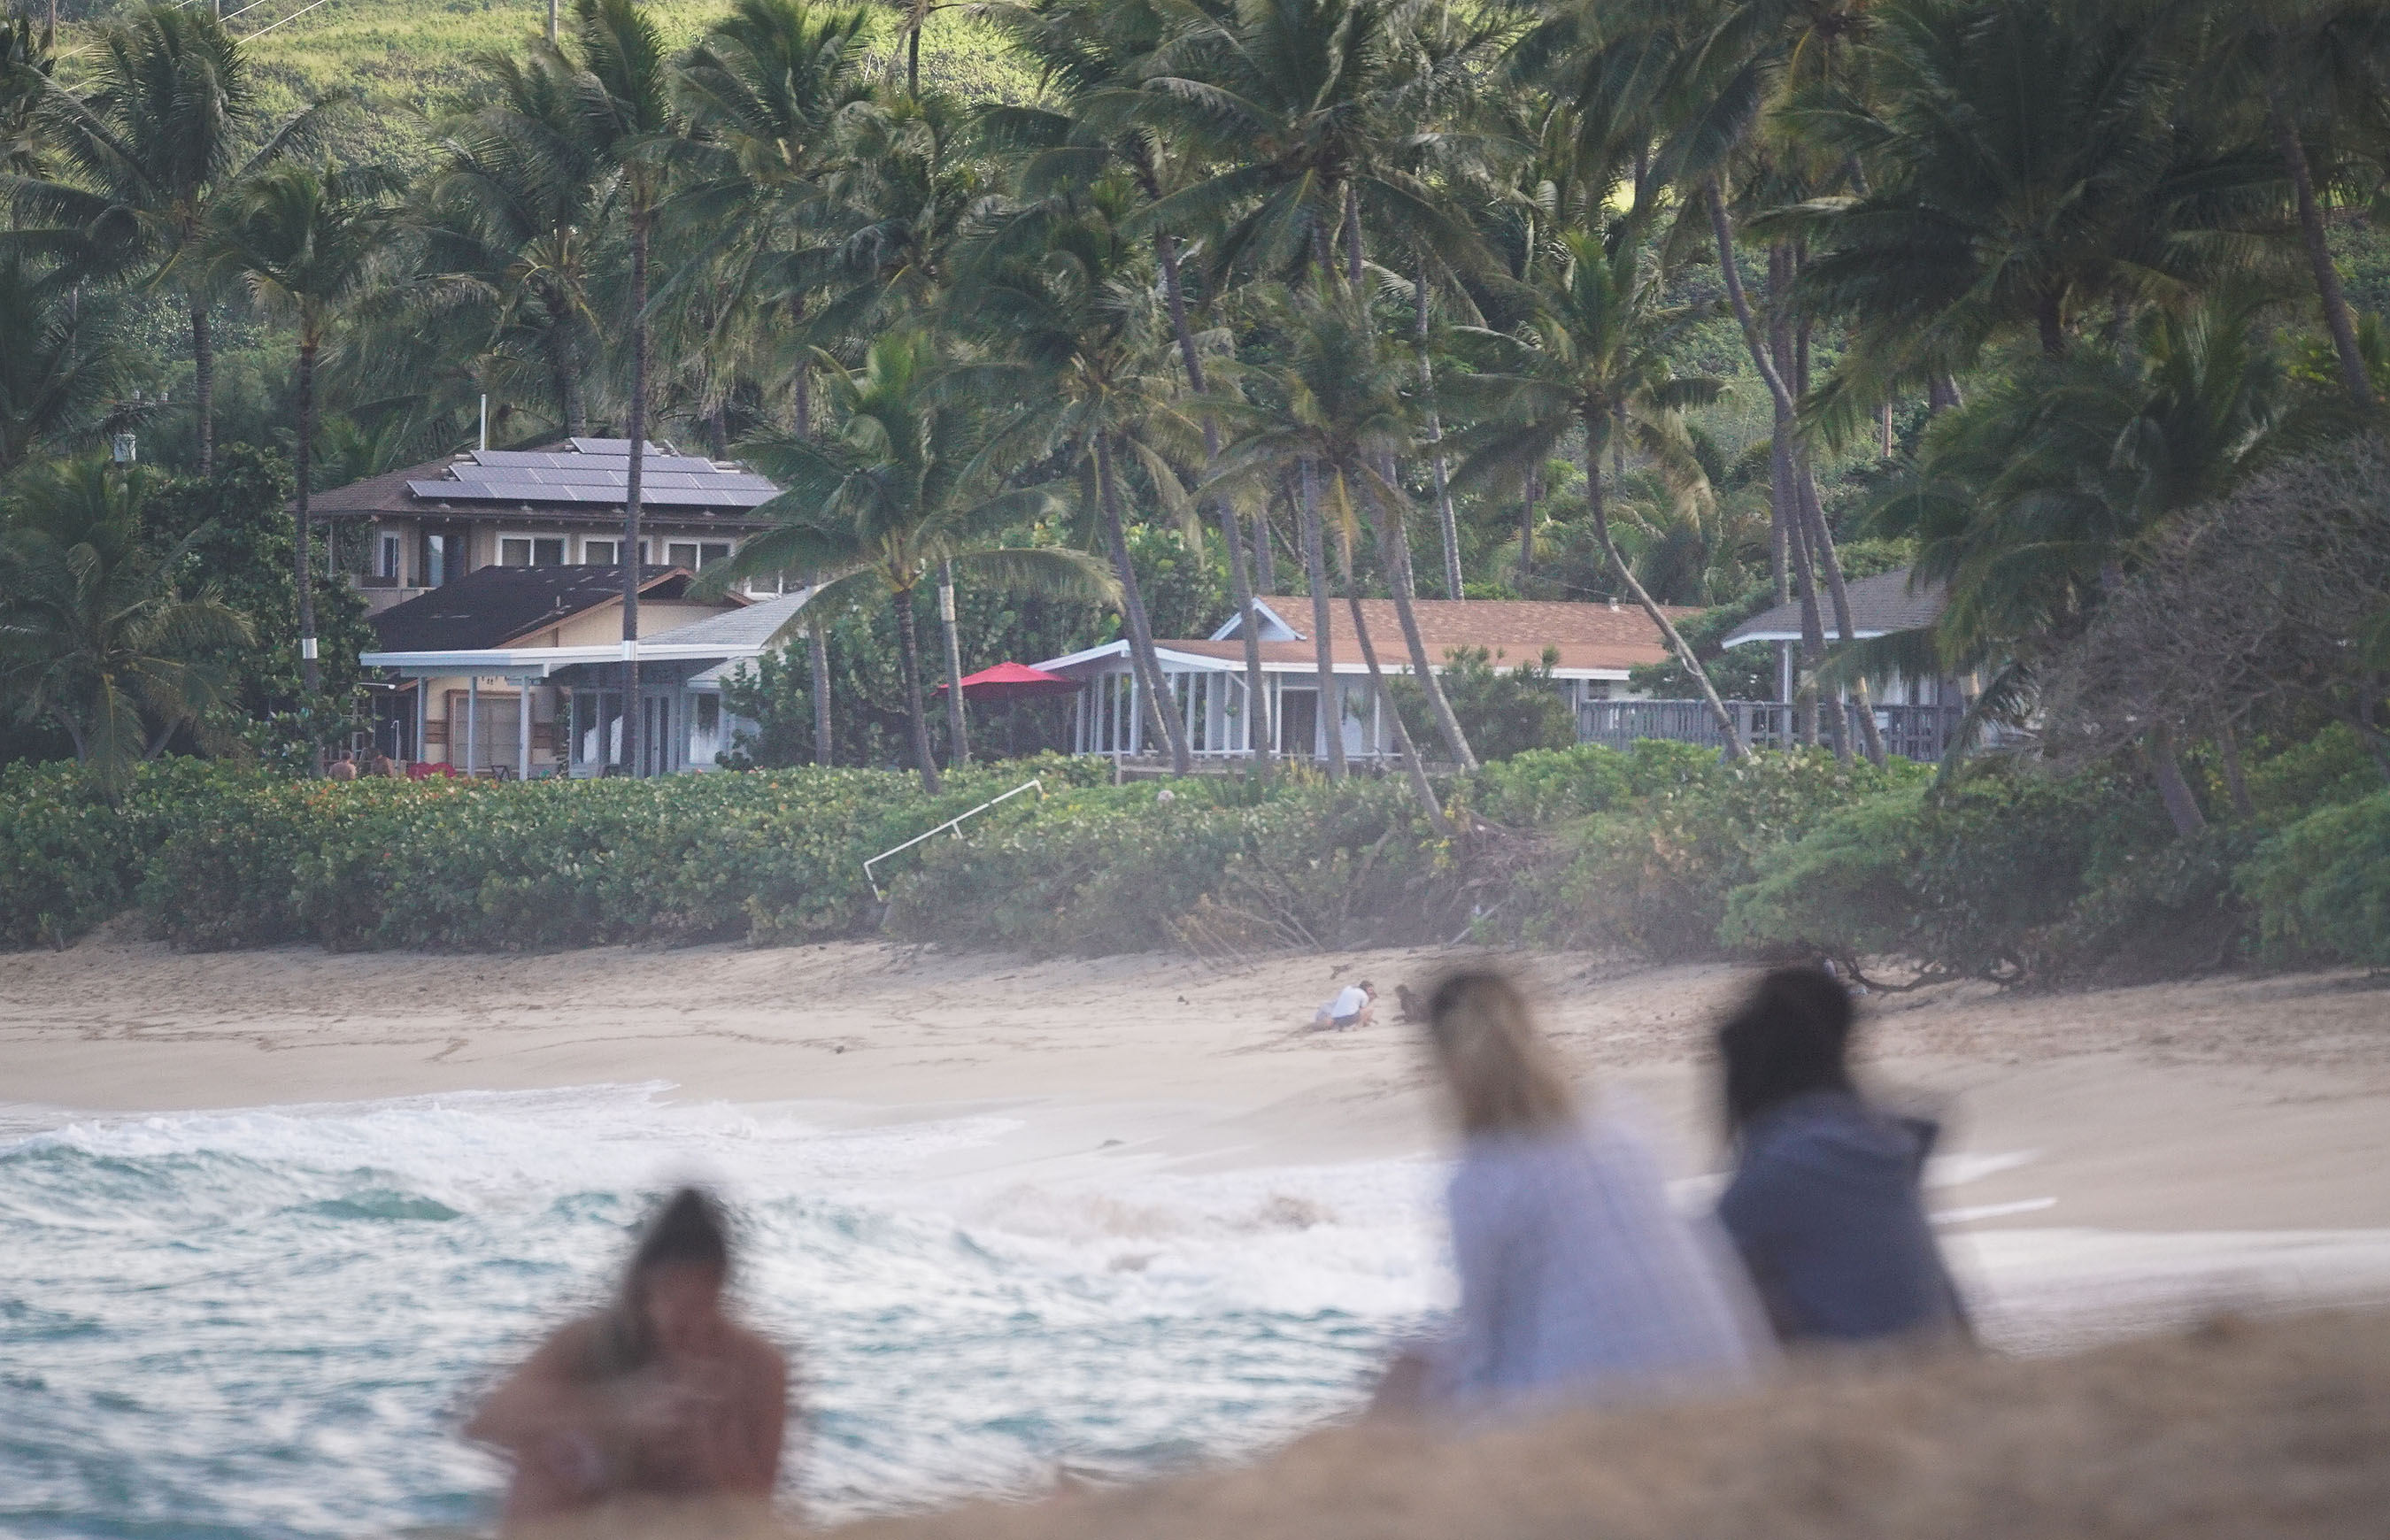 Addicted To Airbnb: Hawaii's Tourism Economy Depends On Illegal…